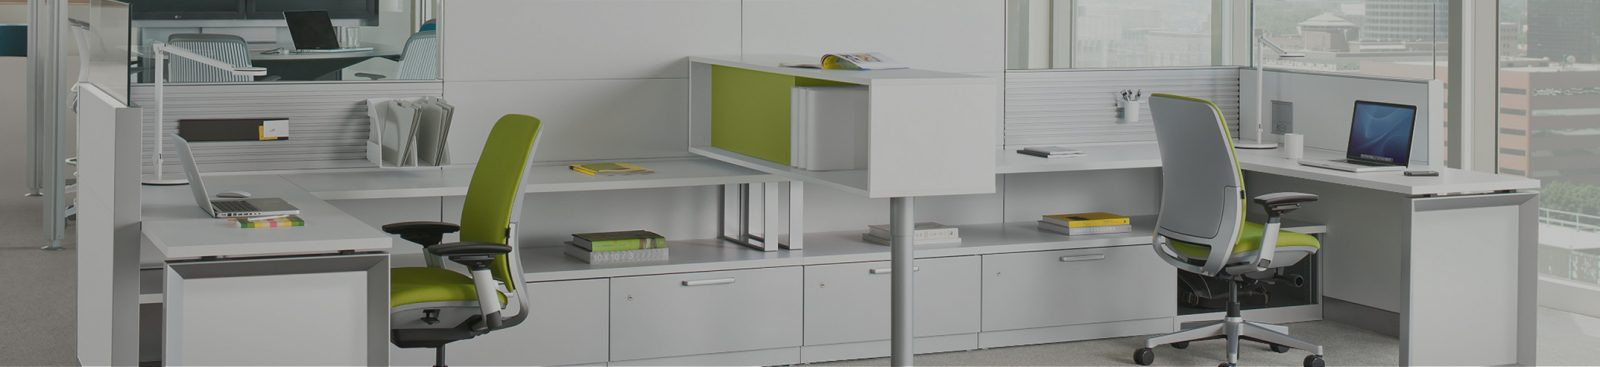 How to reduce clutter in the workplace image